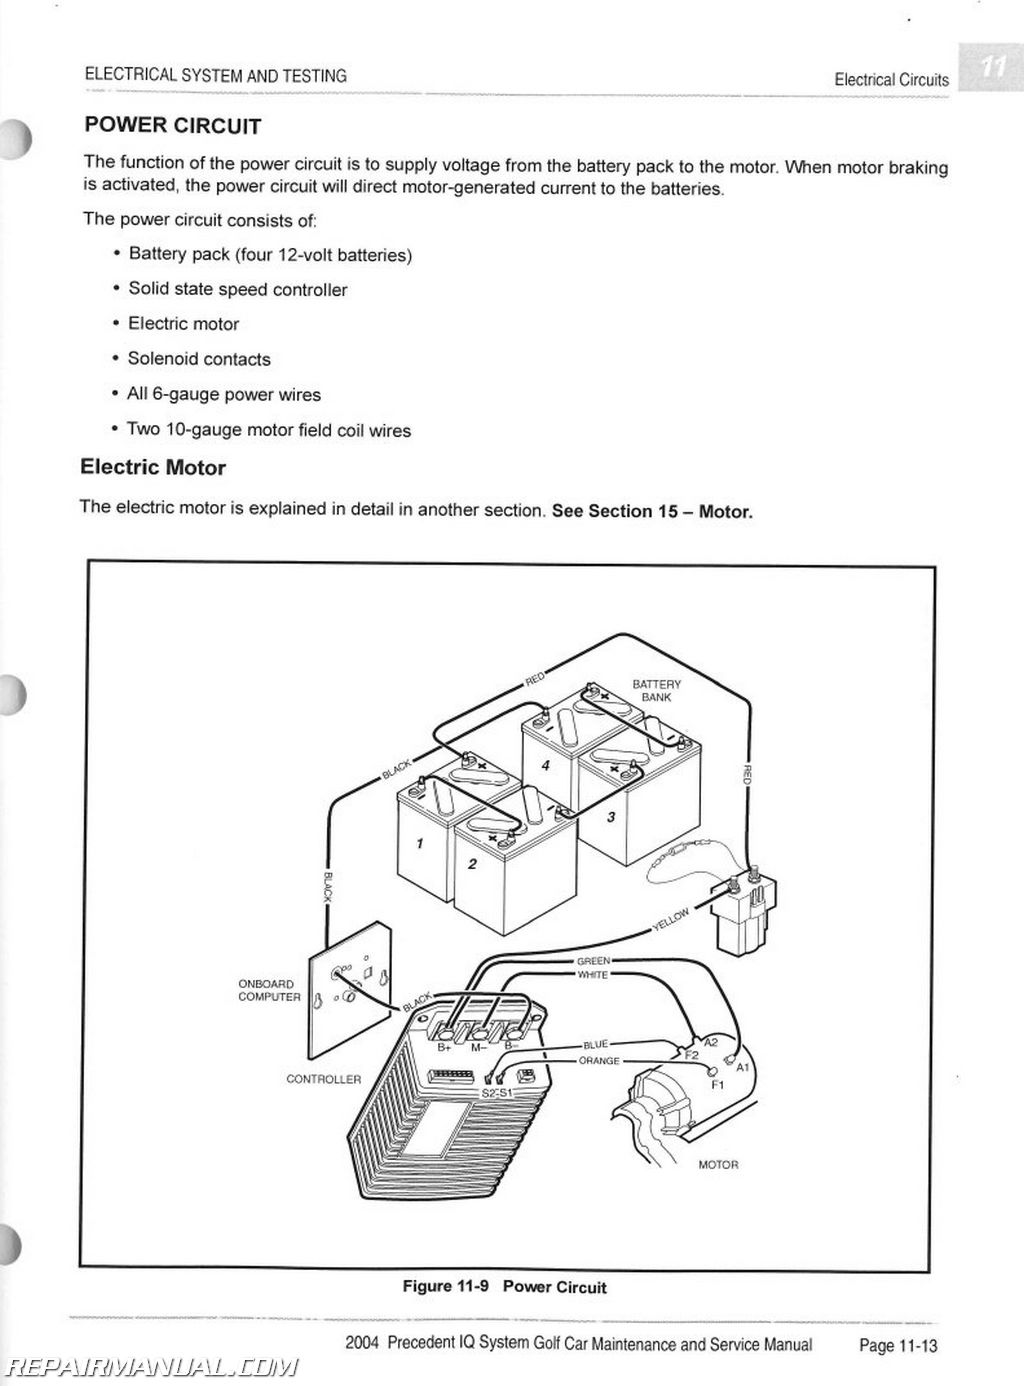 hight resolution of club car manuals and diagrams wiring diagram portal 2007 polaris ranger parts diagram 2004 club car